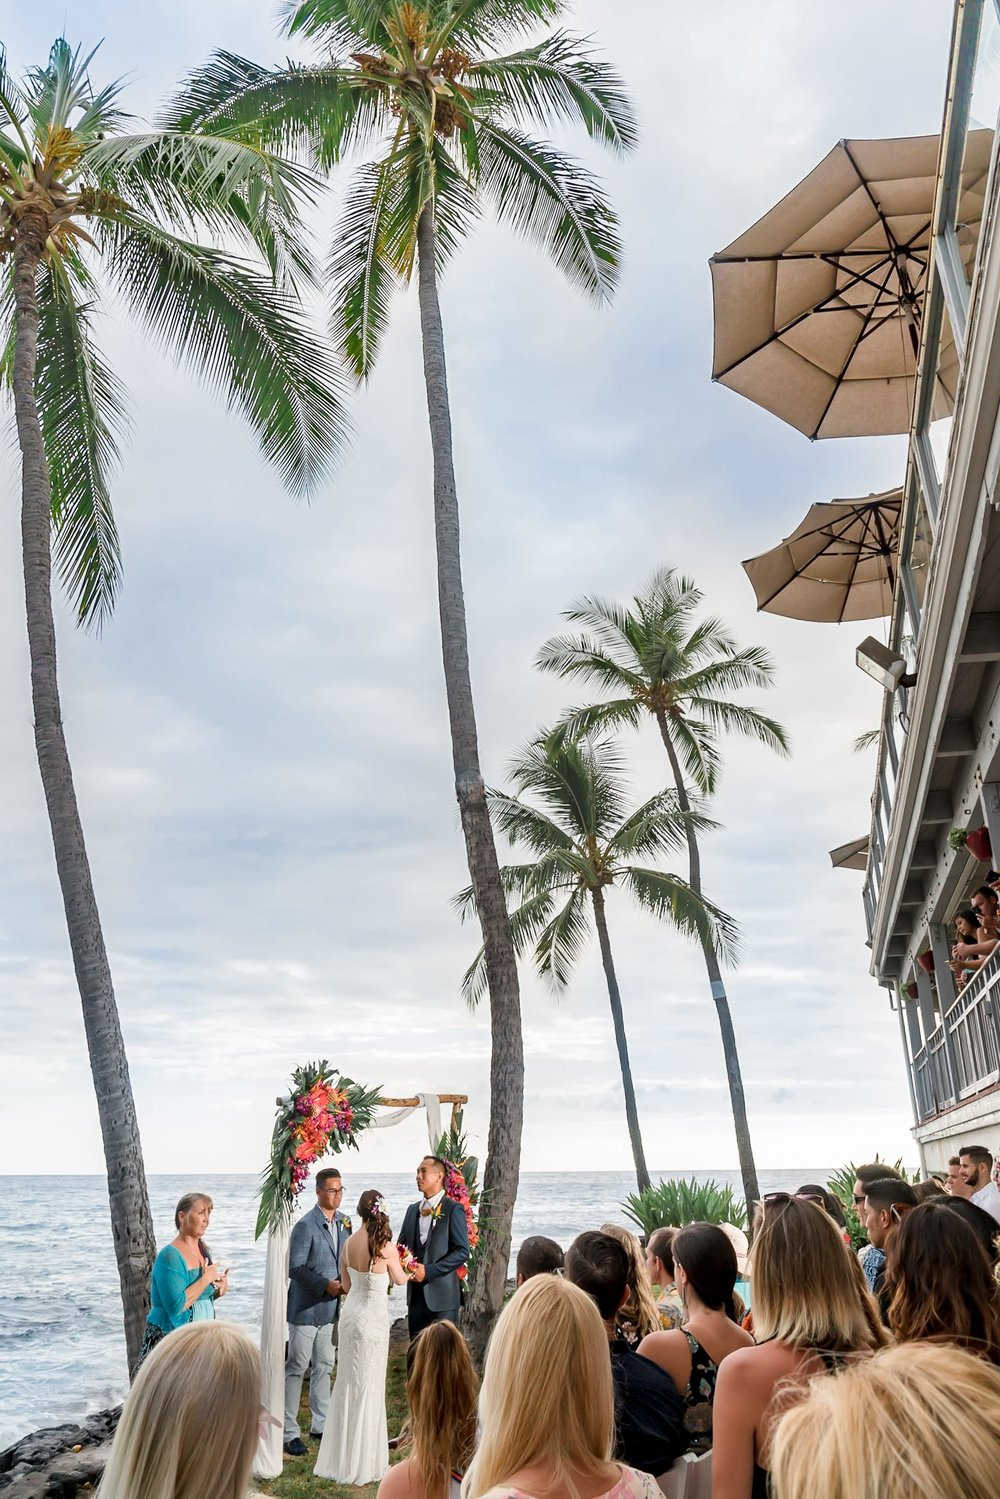 Big-Island-Hawaii-Jade-Keyes-Derrick-Alig-Daylight-Mind-Kailua-Kona-Hawaii-Wedding10.jpg